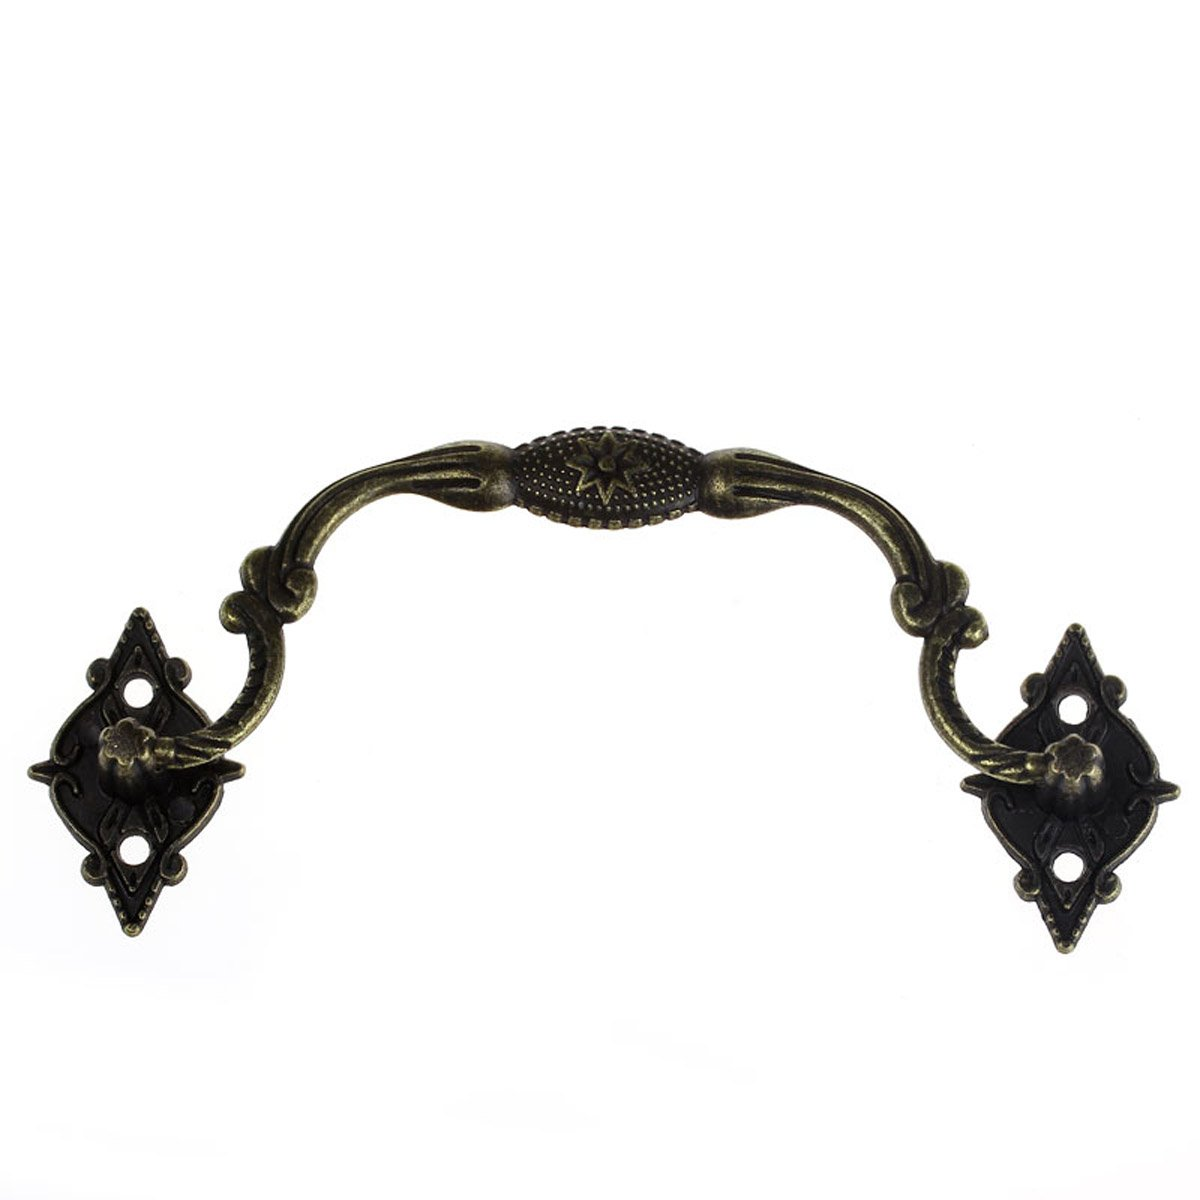 Housweety 10PCs Box& Suitcase Holder Arch Bronze Tone 9.6cm x3.6cm(3 6/8 x1 3/8) 3.3cm HOUSWEETYB32890